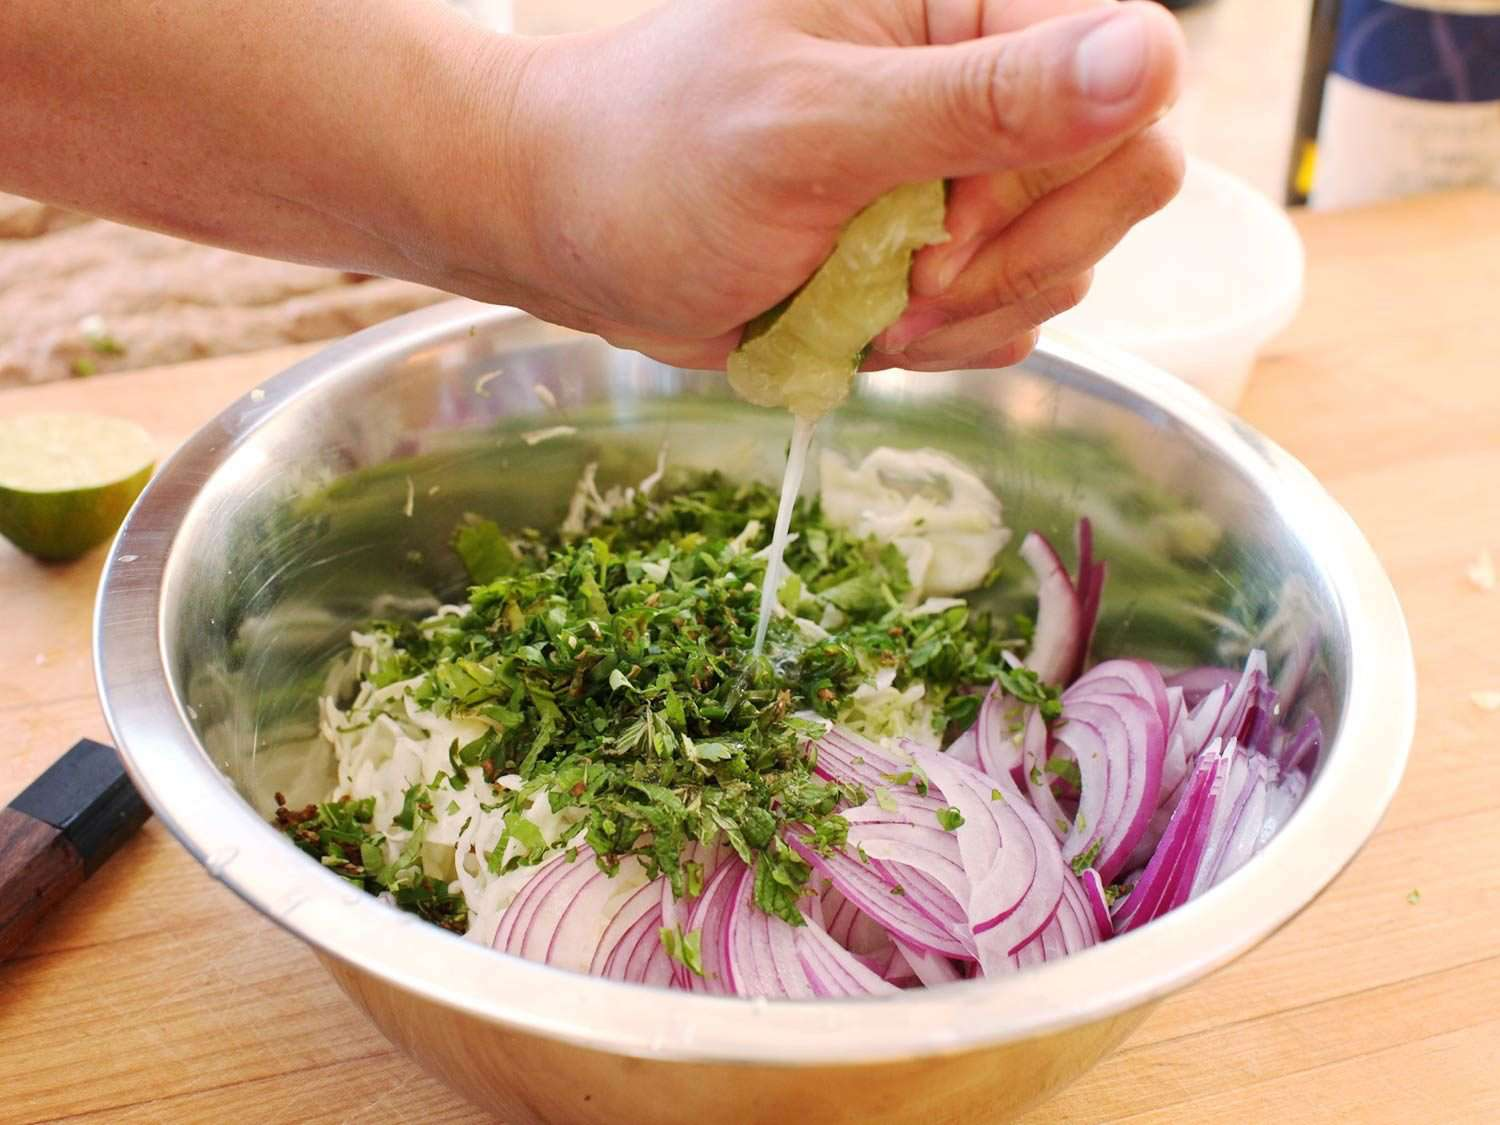 A hand squeezing lime over a metal bowl of cabbage, red onion, and herbs (Spicy Cabbage and Red Onion Slaw)